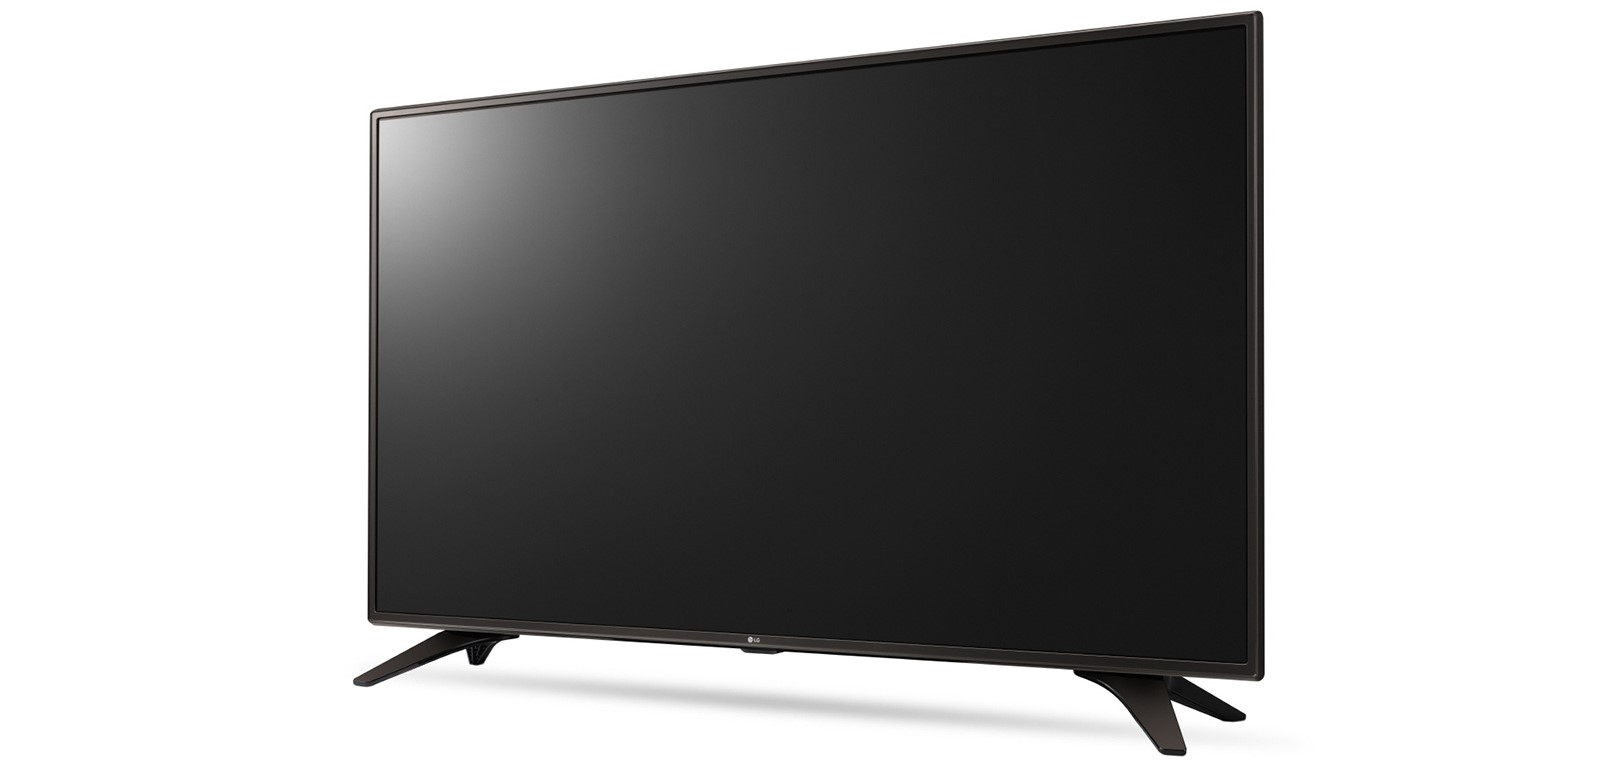 LG 55LV340C 55 inch 1080p Commercial TV with Wake on LAN